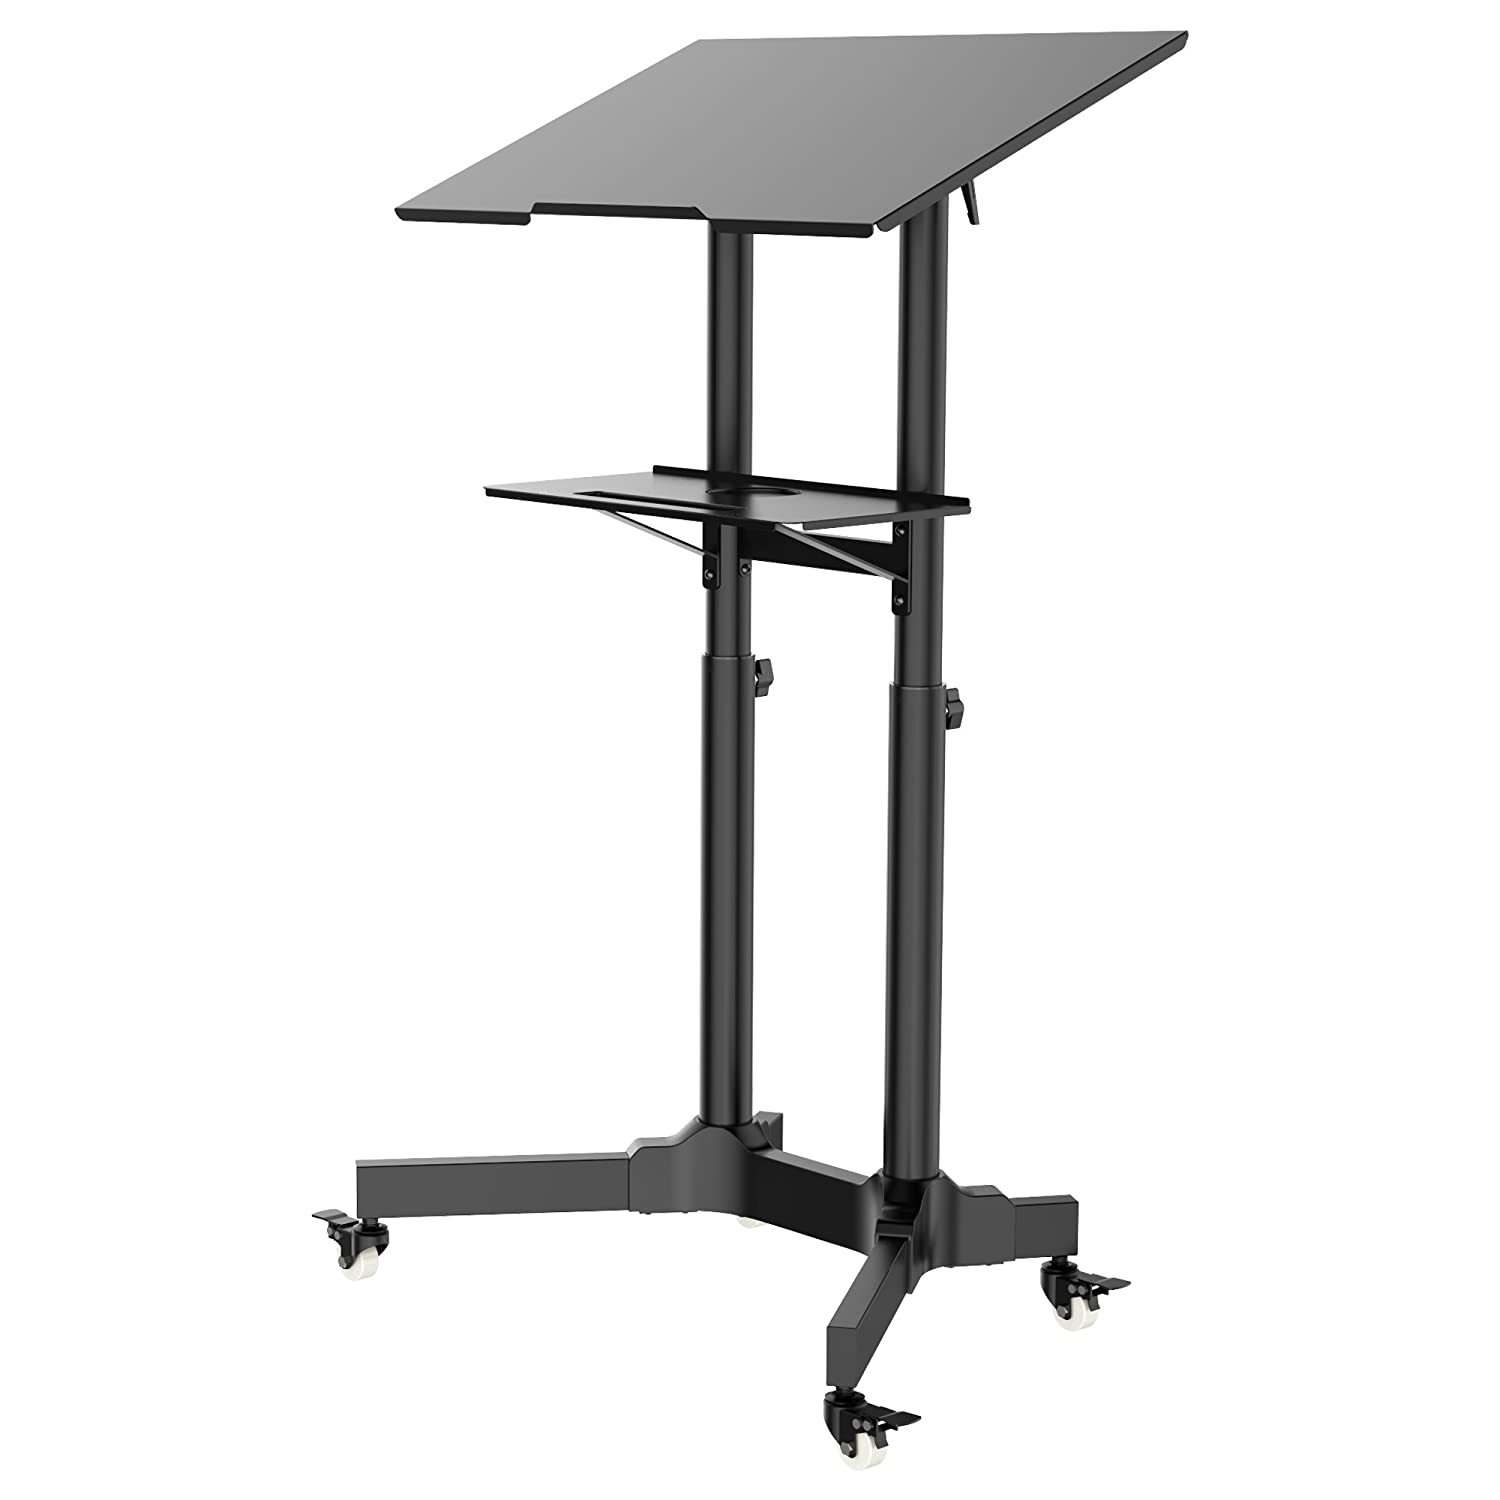 1homefurnit Mobile Table Laptop Desk Stand Notebook Cart Tray Compact Adjustable Workstation 1home furnit